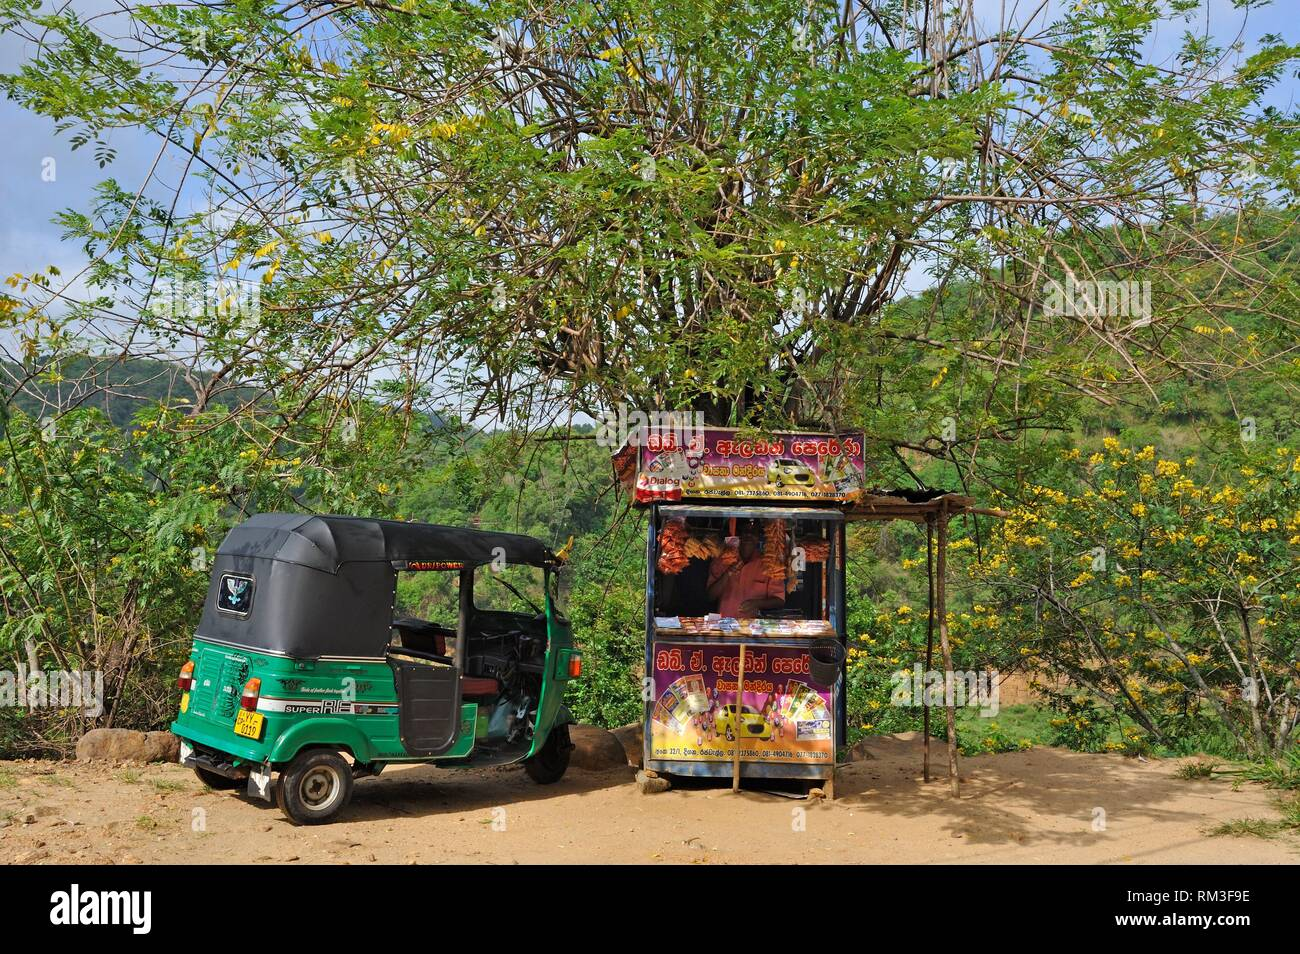 lottery kiosq on the side of the road, Badulla district, Sri Lanka, Indian subcontinent, South Asia. - Stock Image